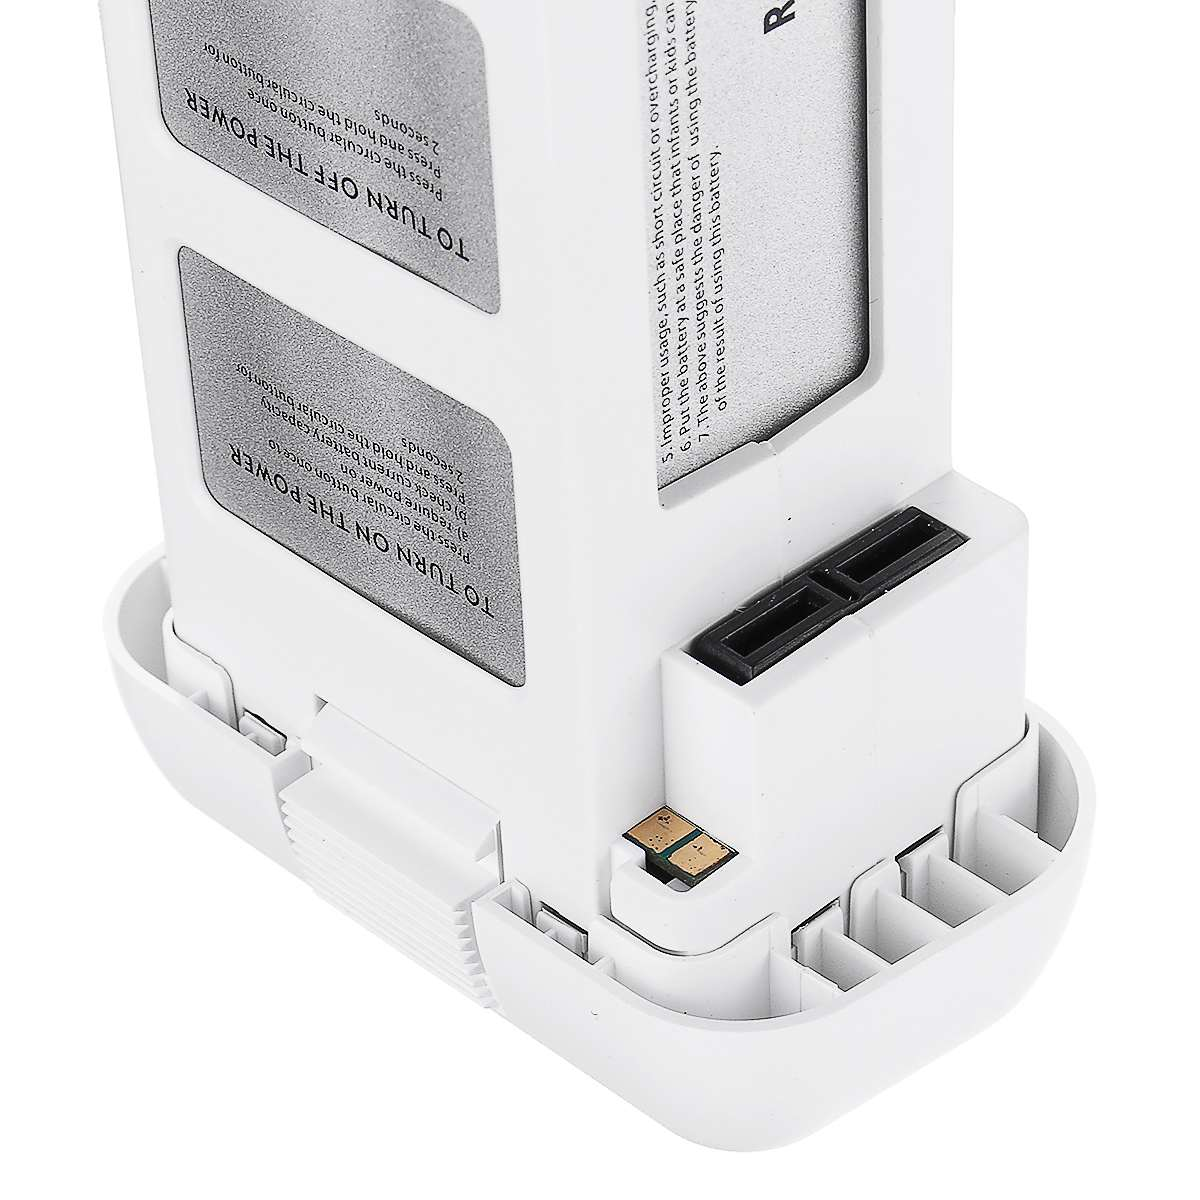 5200mA véritable batterie de vol intelligente DJI Phantom 2 3 15.2 V, LiPo 4 S 856678 P batterie de Drone électronique grand public 2019 nouveau - 6